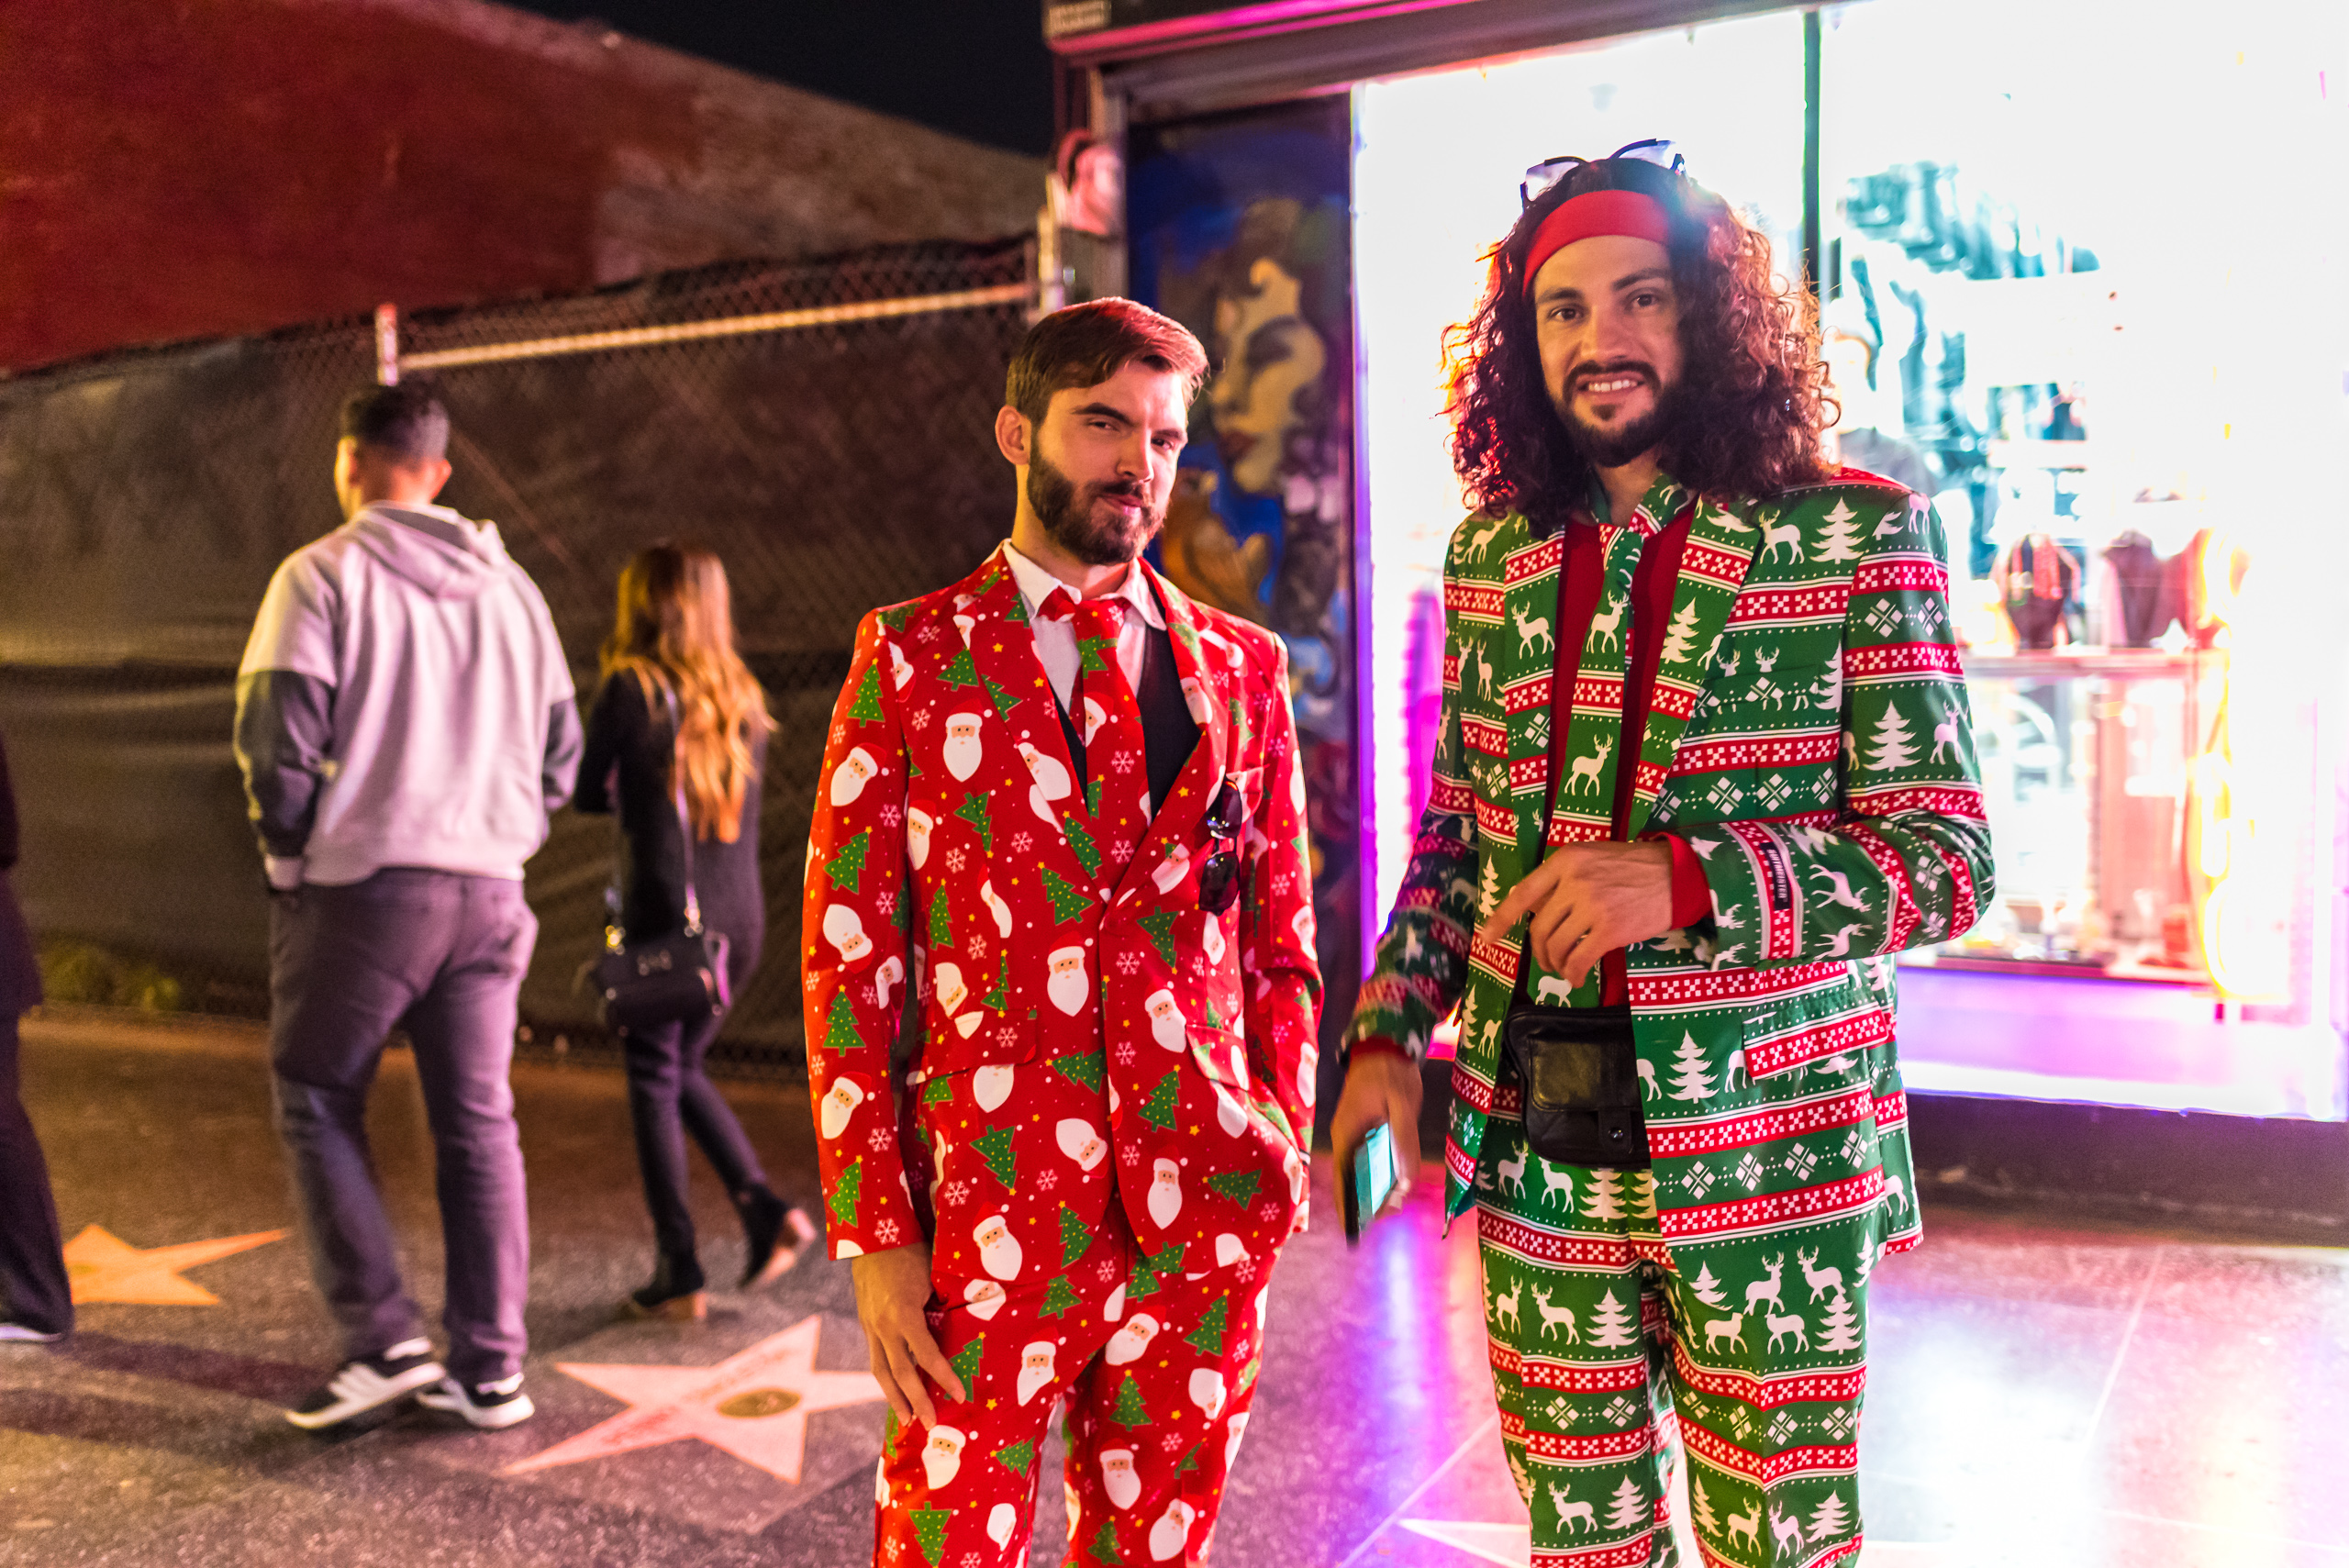 Two guys in Christmas suits on Hollywood Blvd. One in a red suit and one in a green suit. Both suits are decorated with Christmas motifs like trees, reindeer, etc